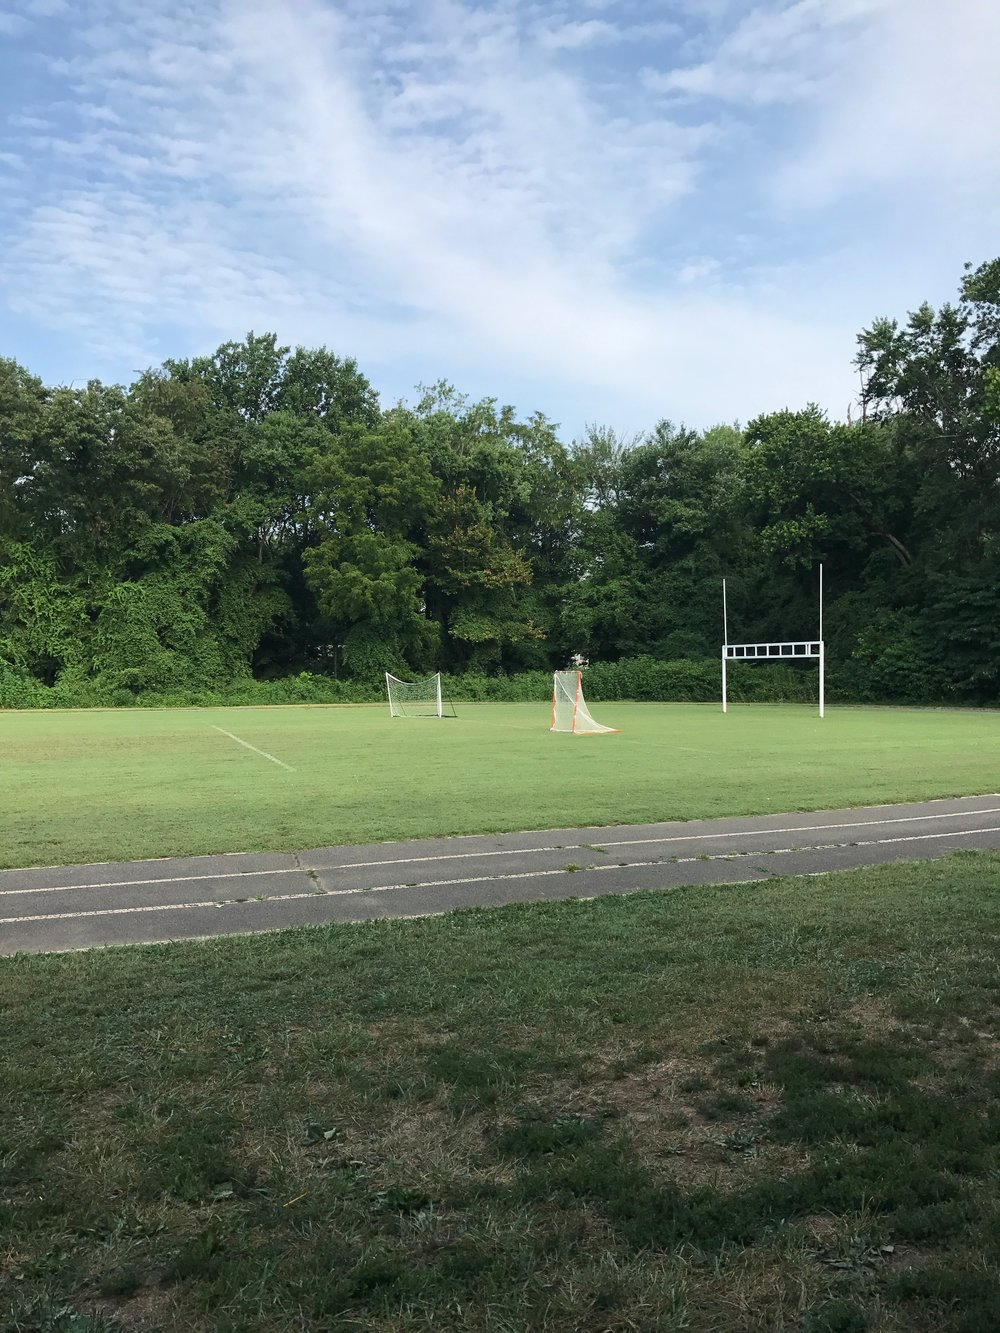 The field and goals at the Club